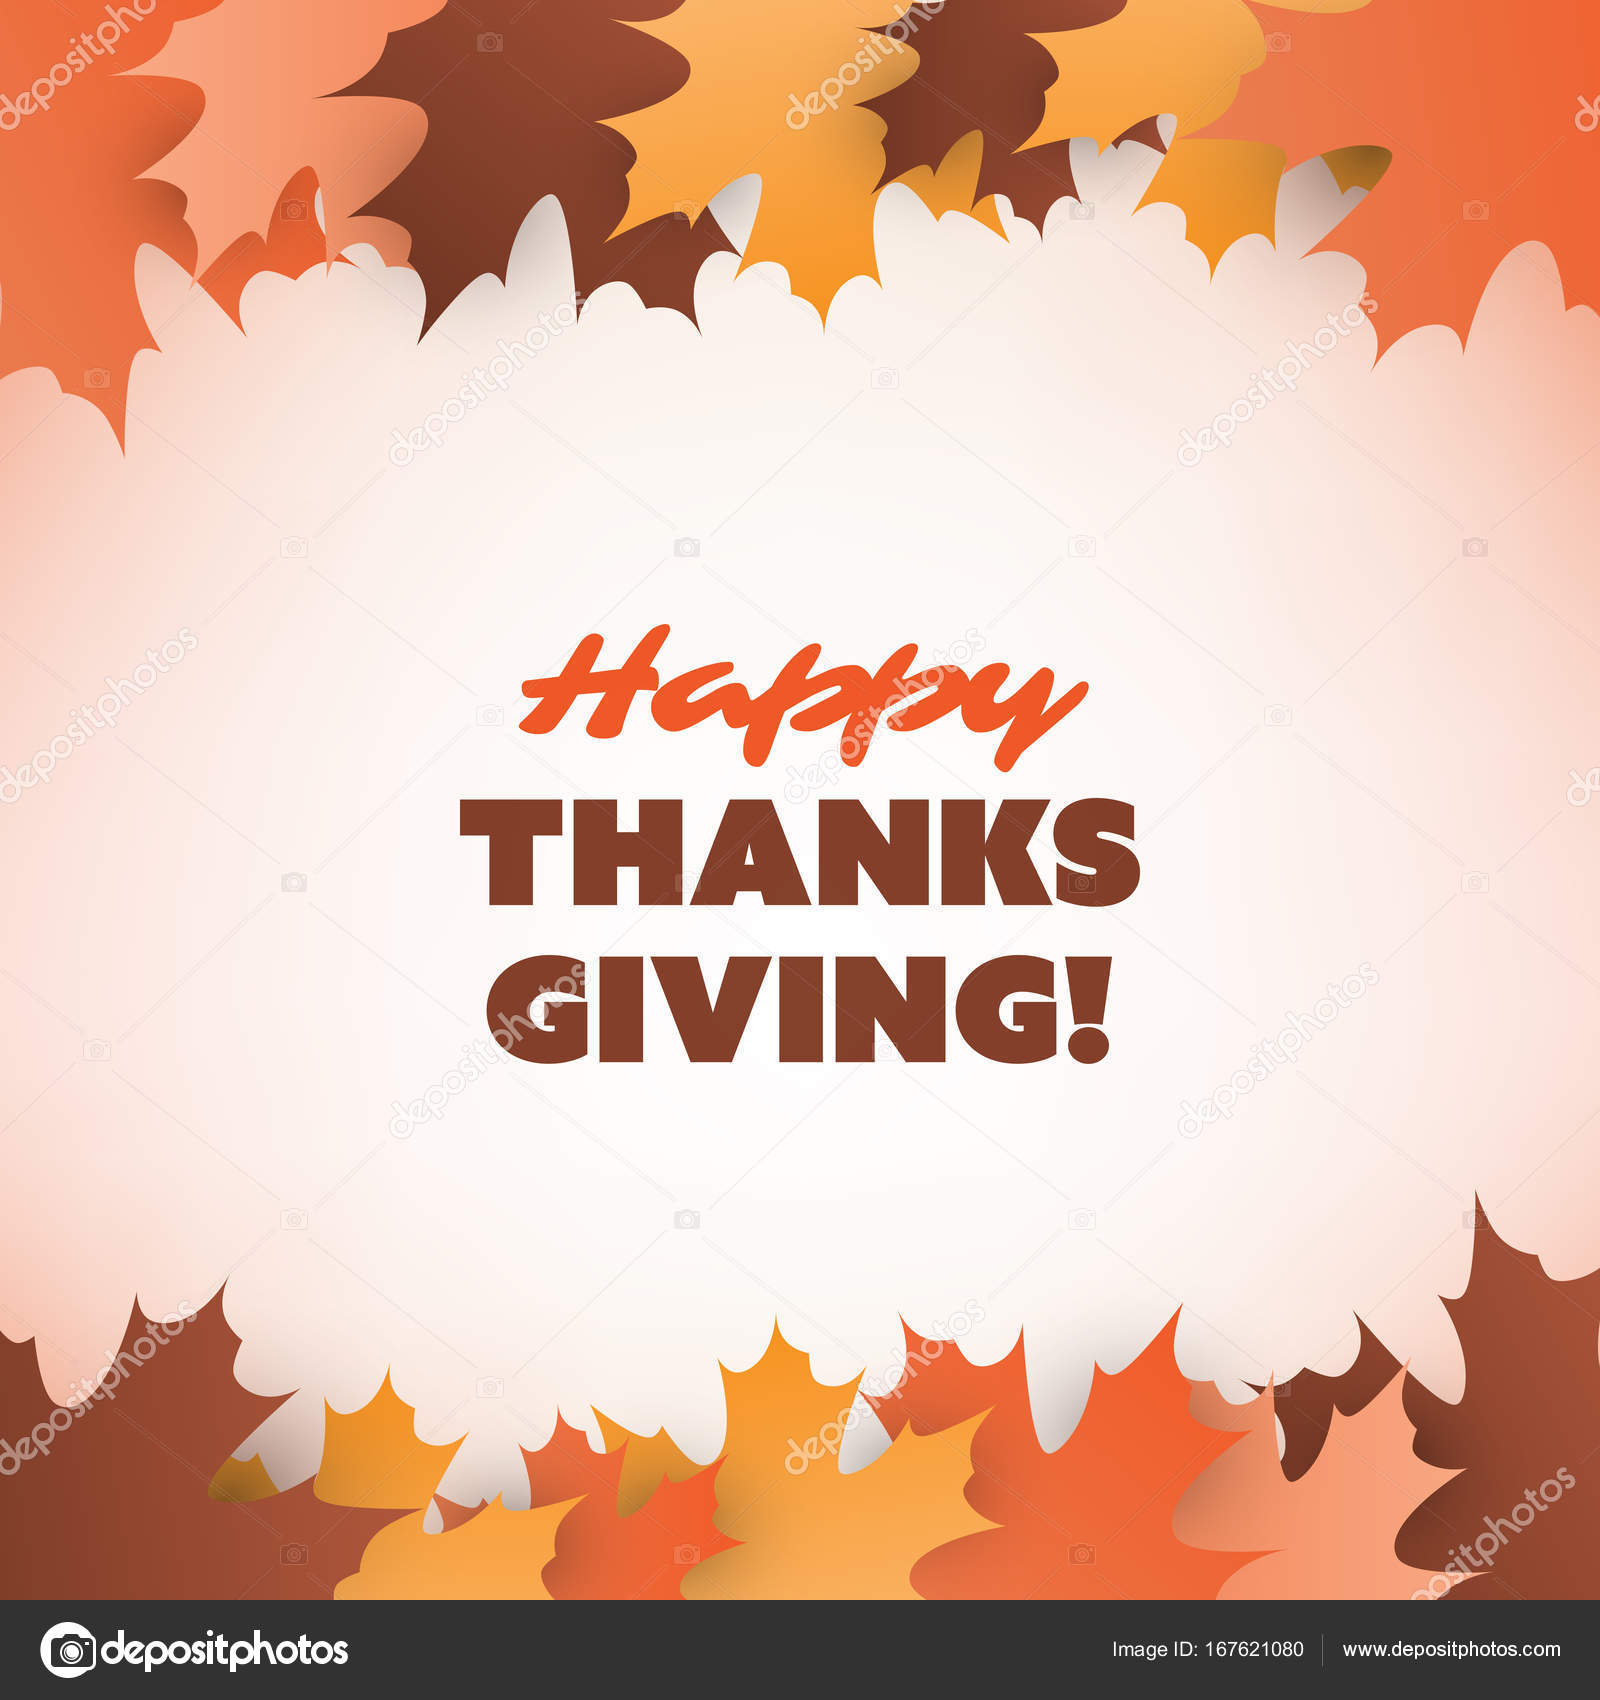 Happy Thanksgiving Card Design Template With Fallen Autumn Leaves - Thanksgiving card template